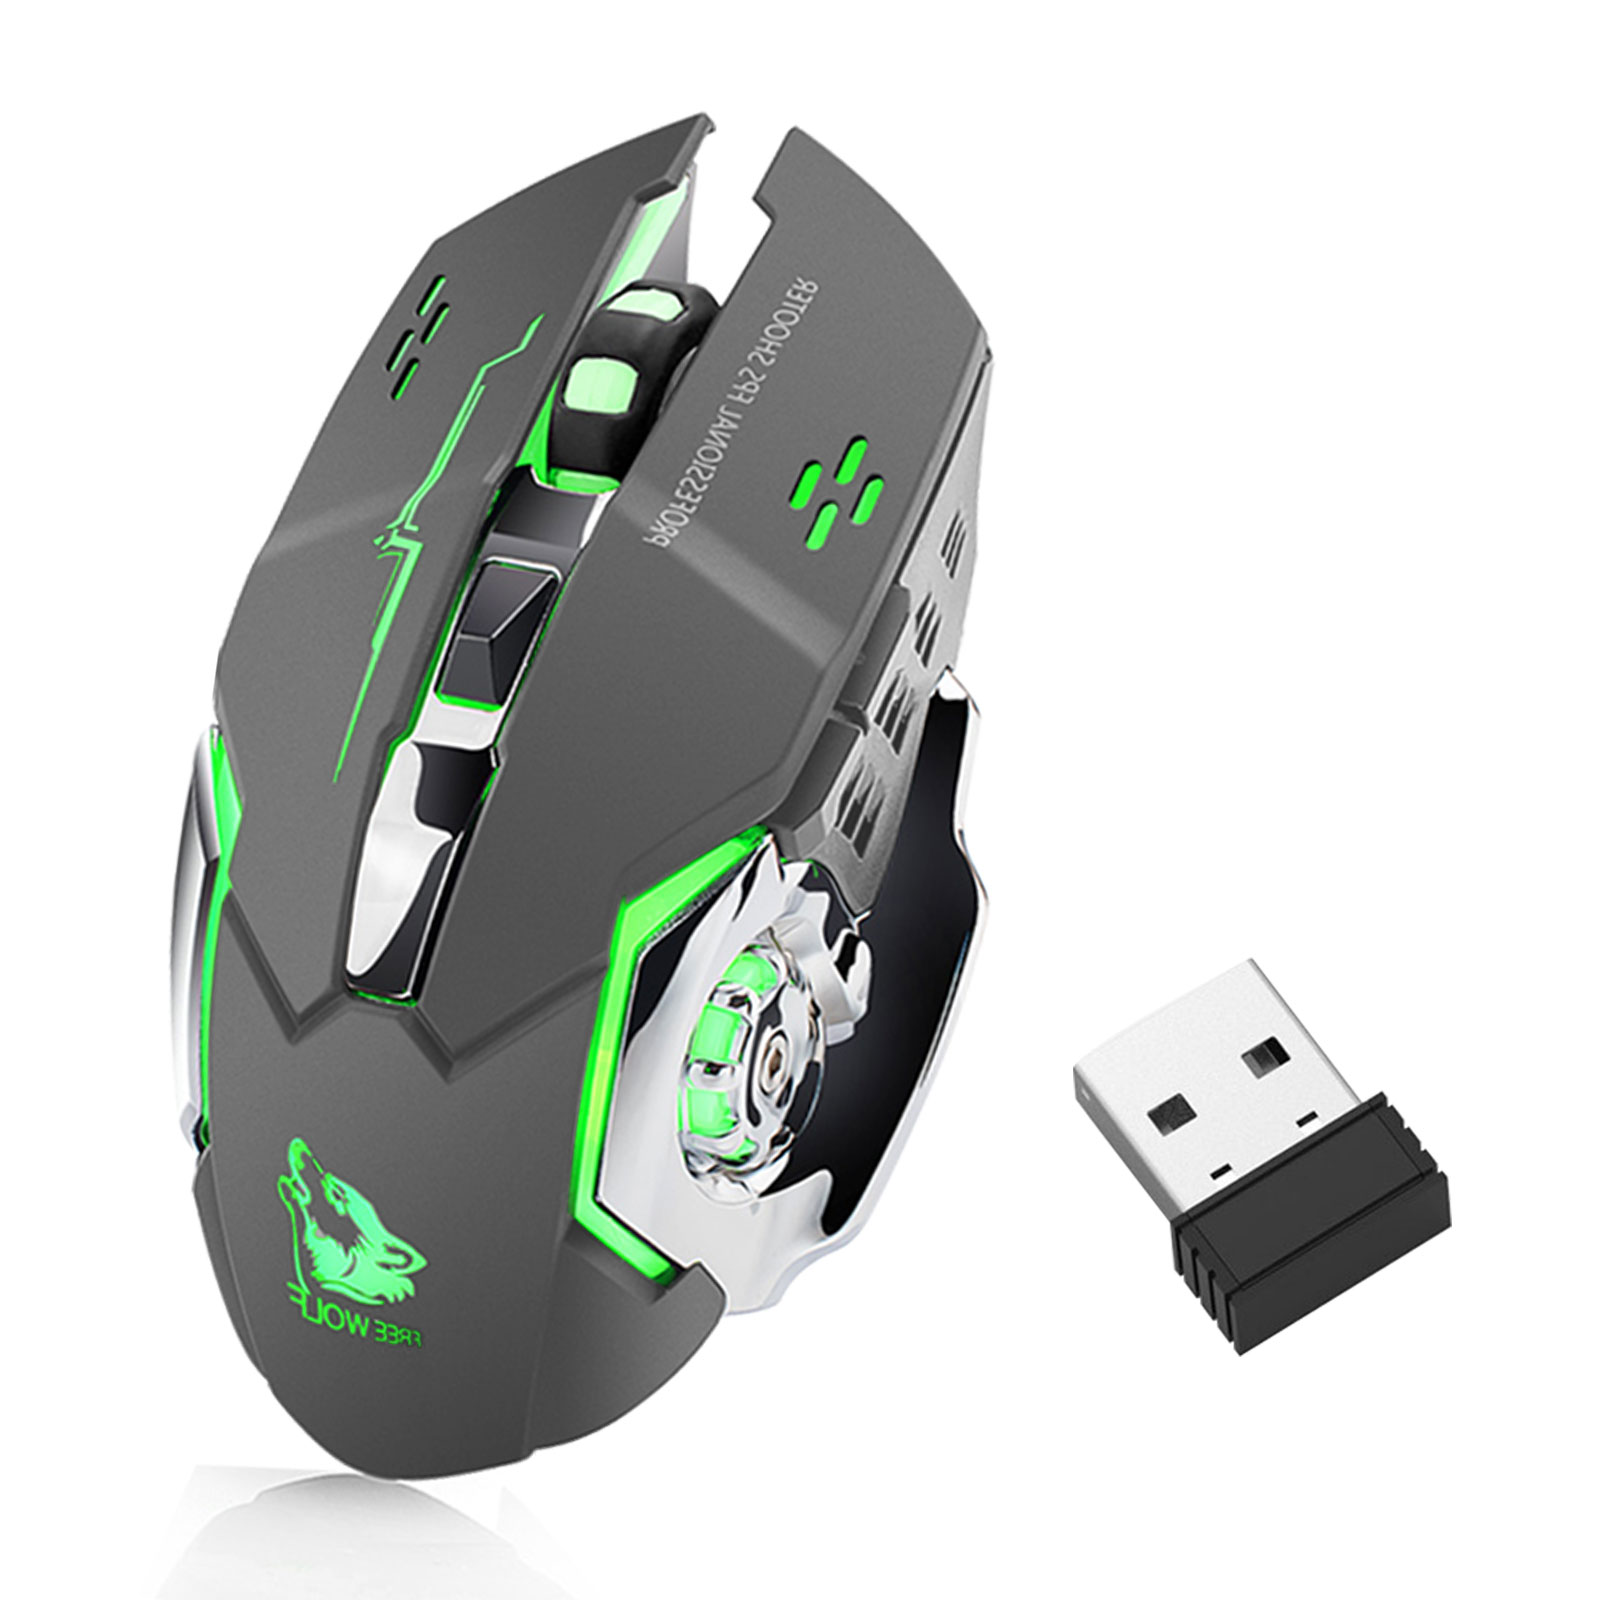 Wireless Gaming Mouse, X8 Rechargeable Silent LED Backlit USB Optical Ergonomic Gaming Mouse (Black/Gray)